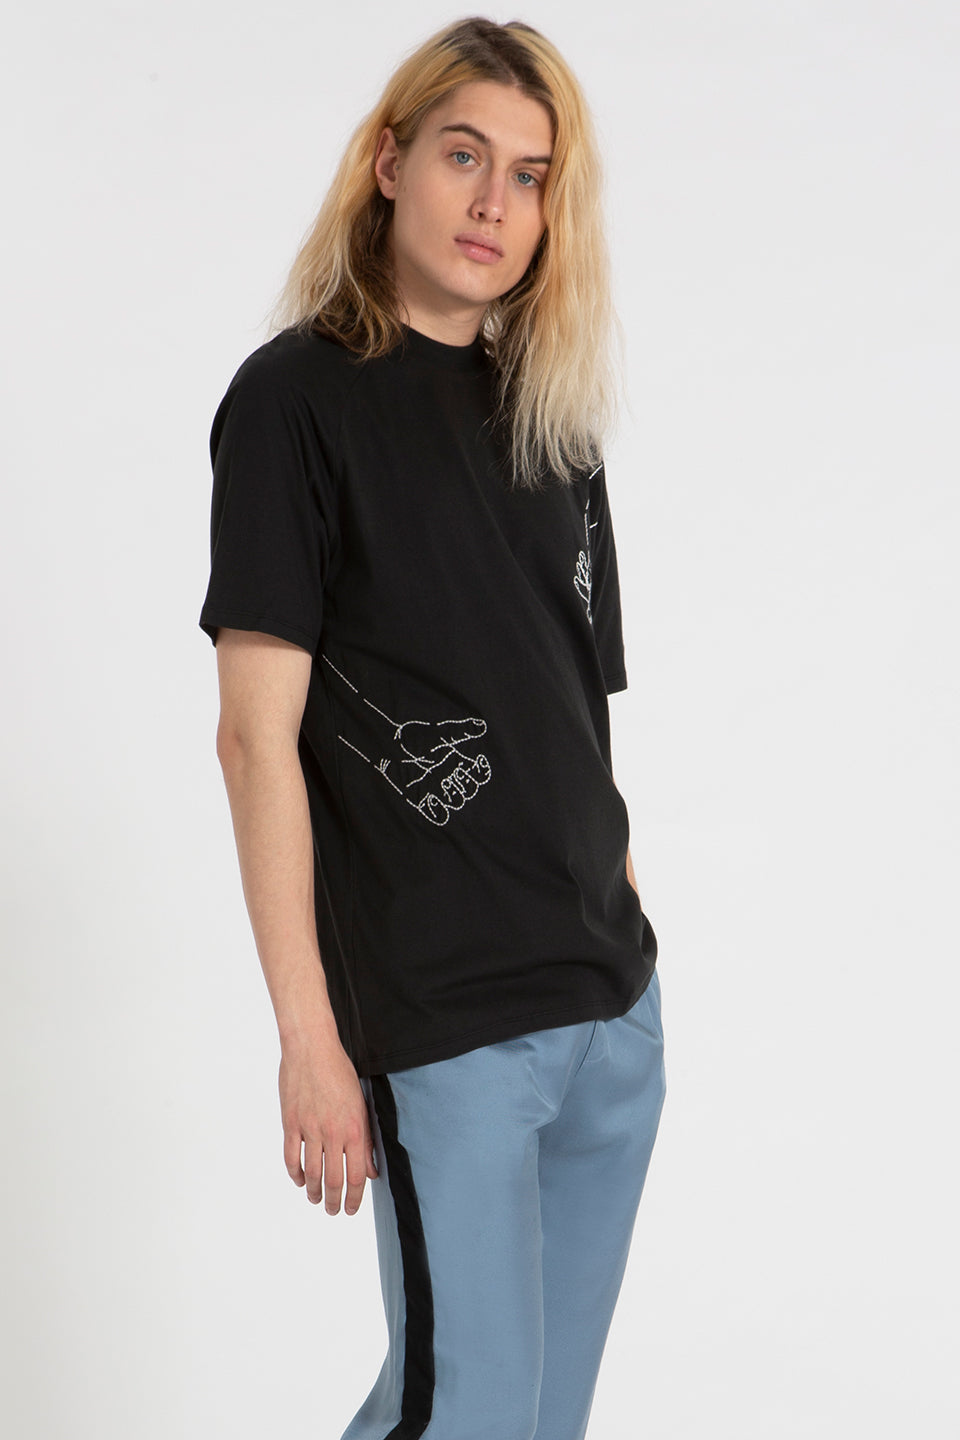 Slash t-shirt black with Mains Embroidery